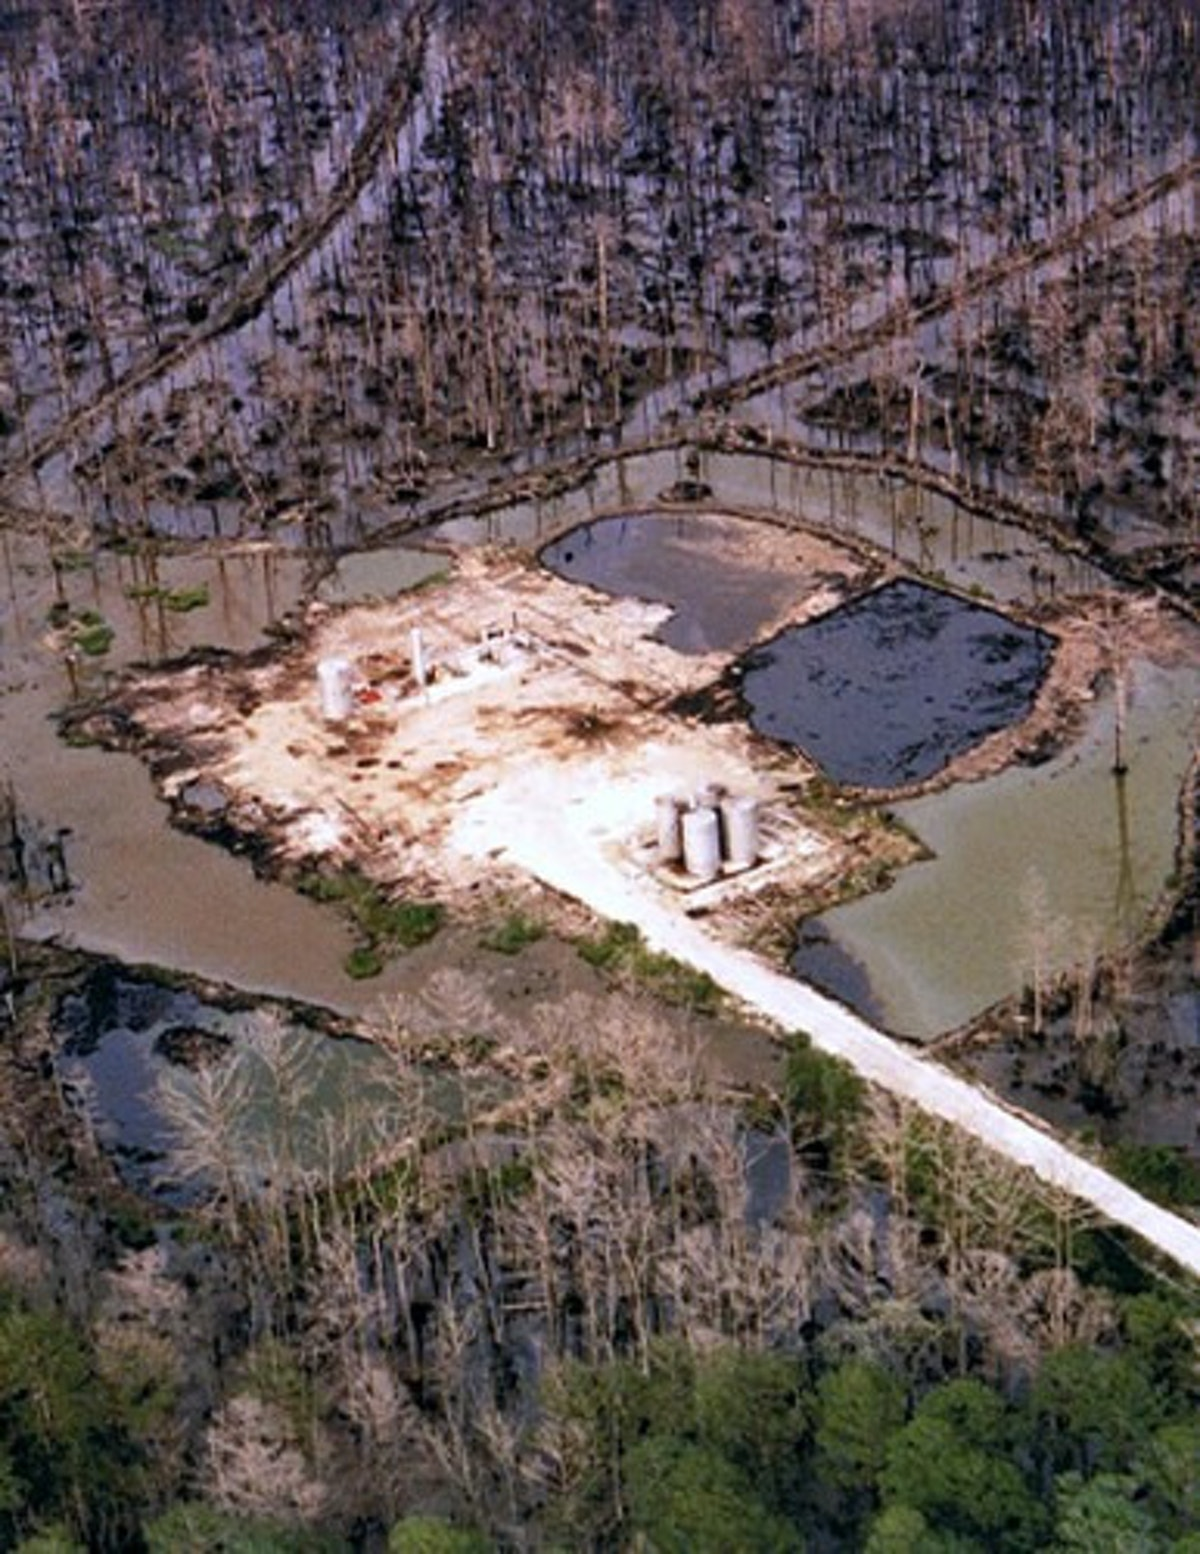 Contamination at an oilfield site